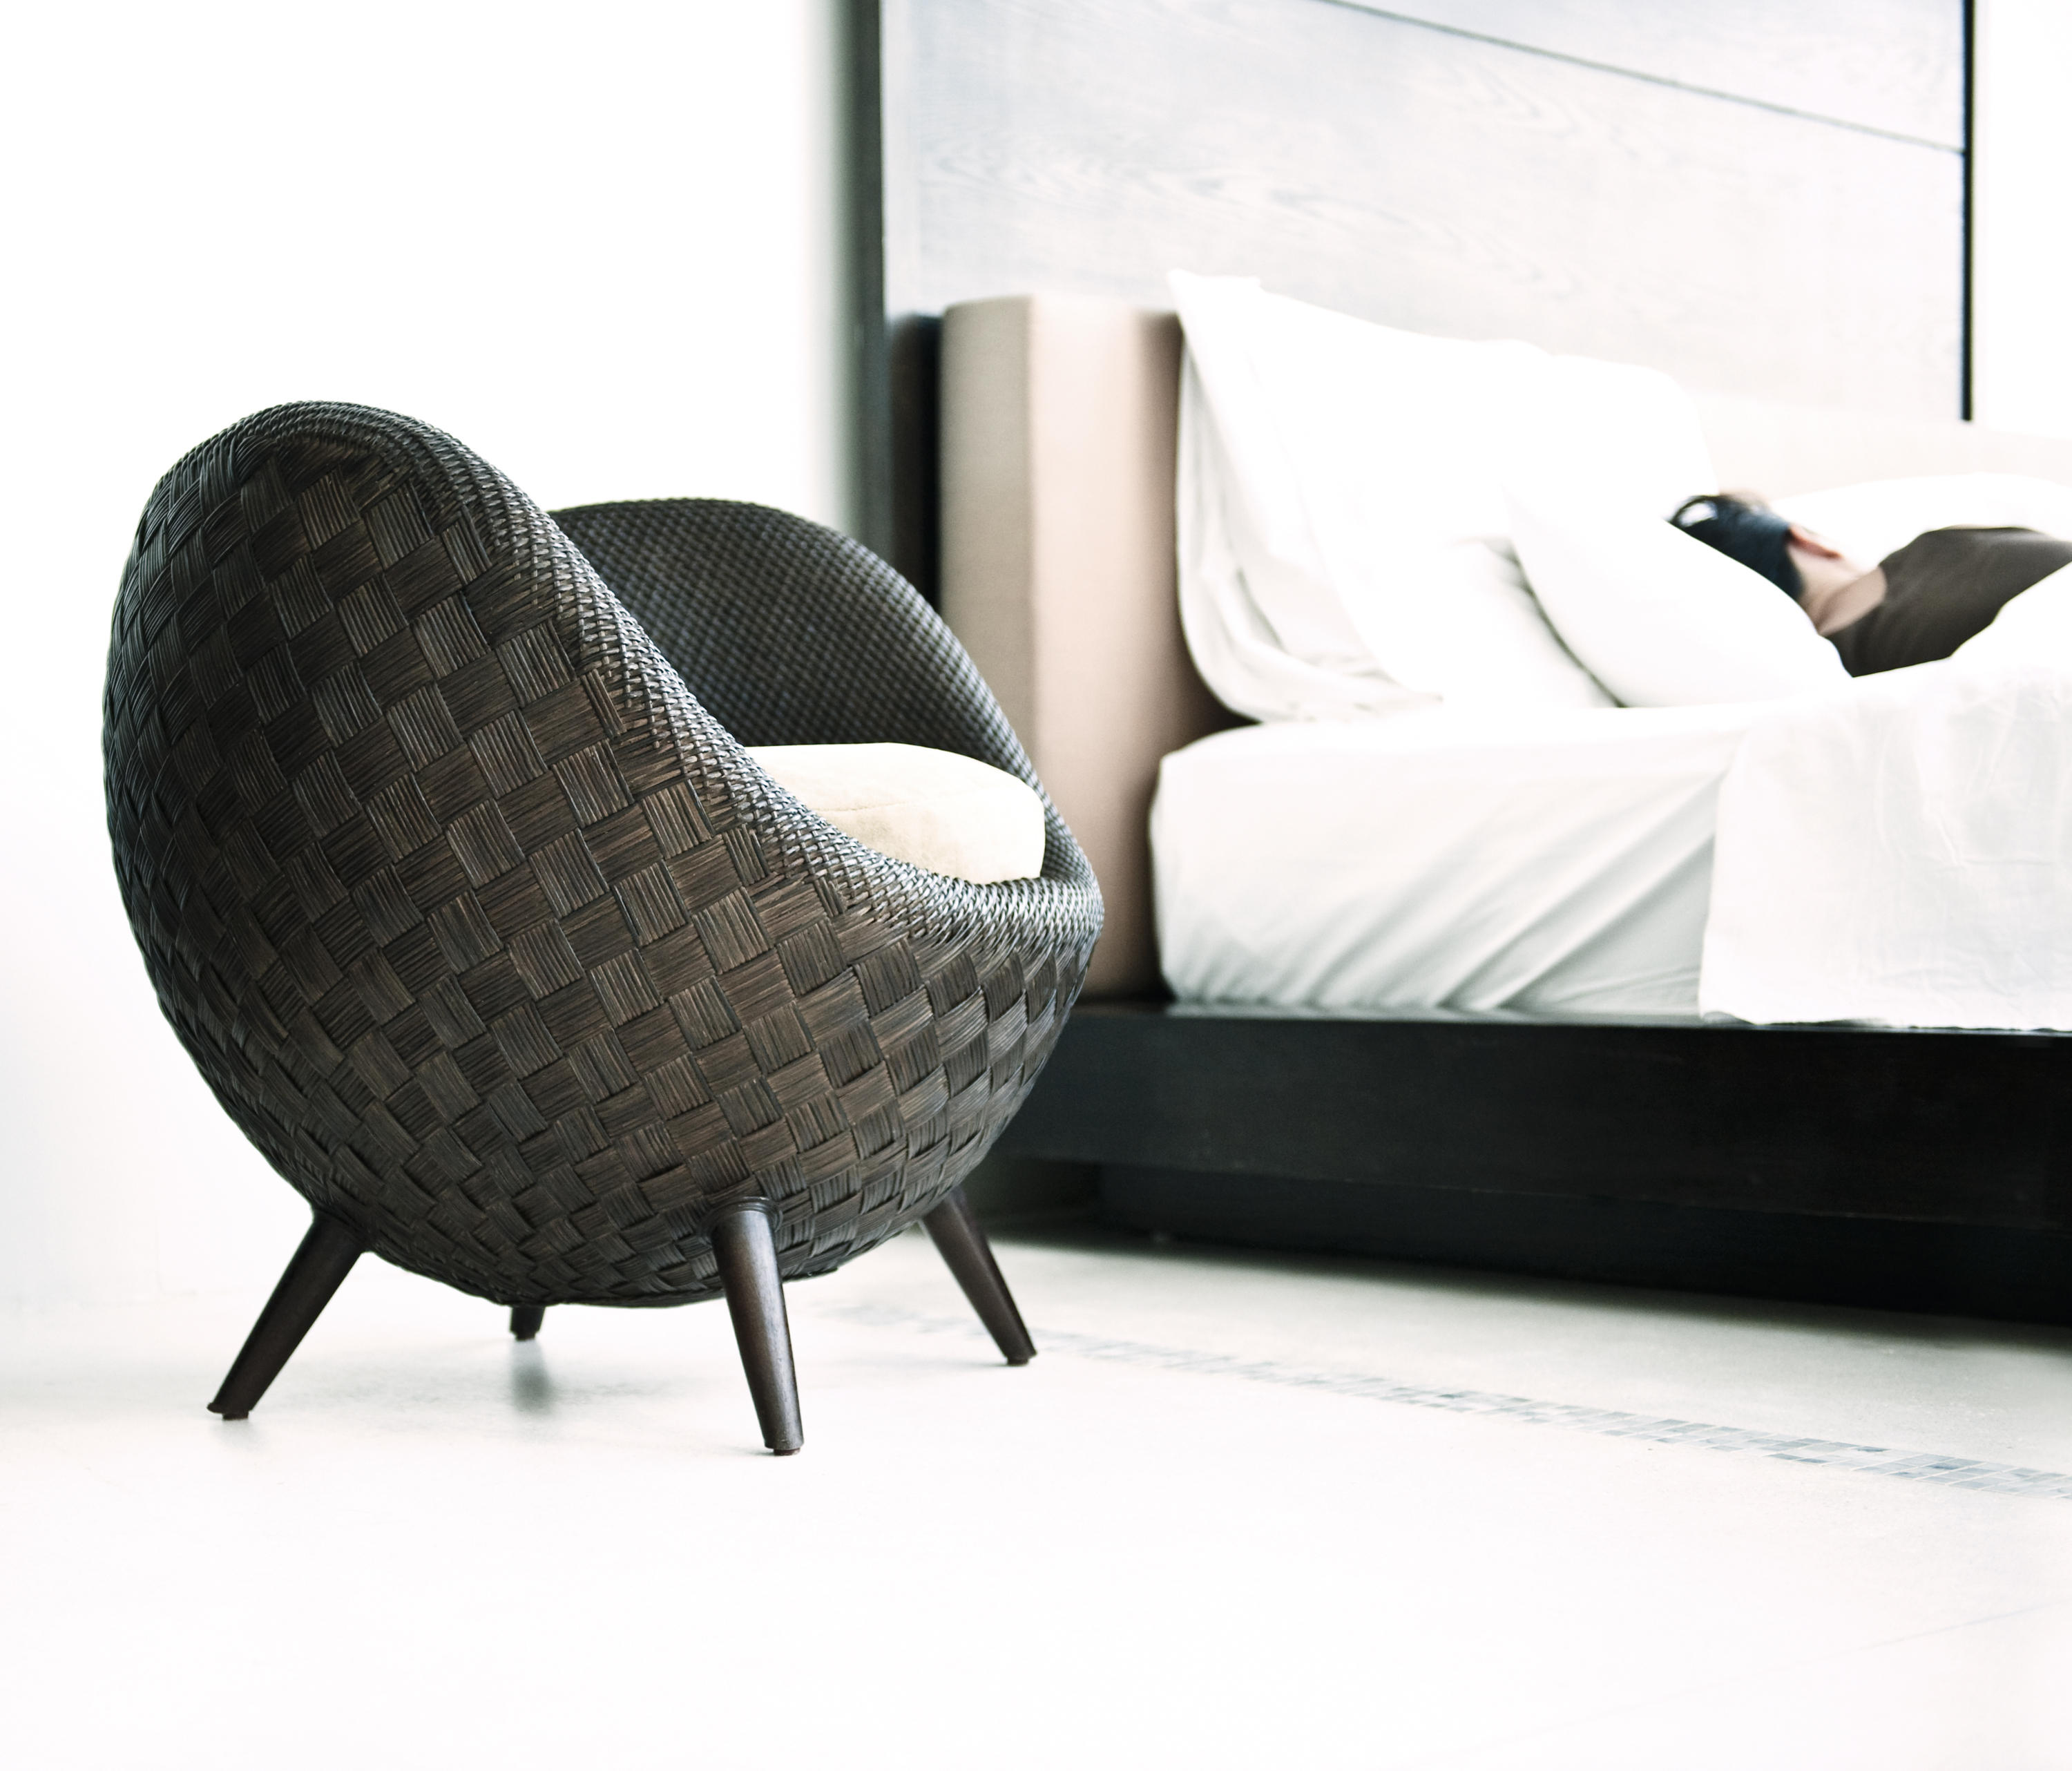 kenneth cobonpue furniture. la luna easy armchair by kenneth cobonpue furniture p